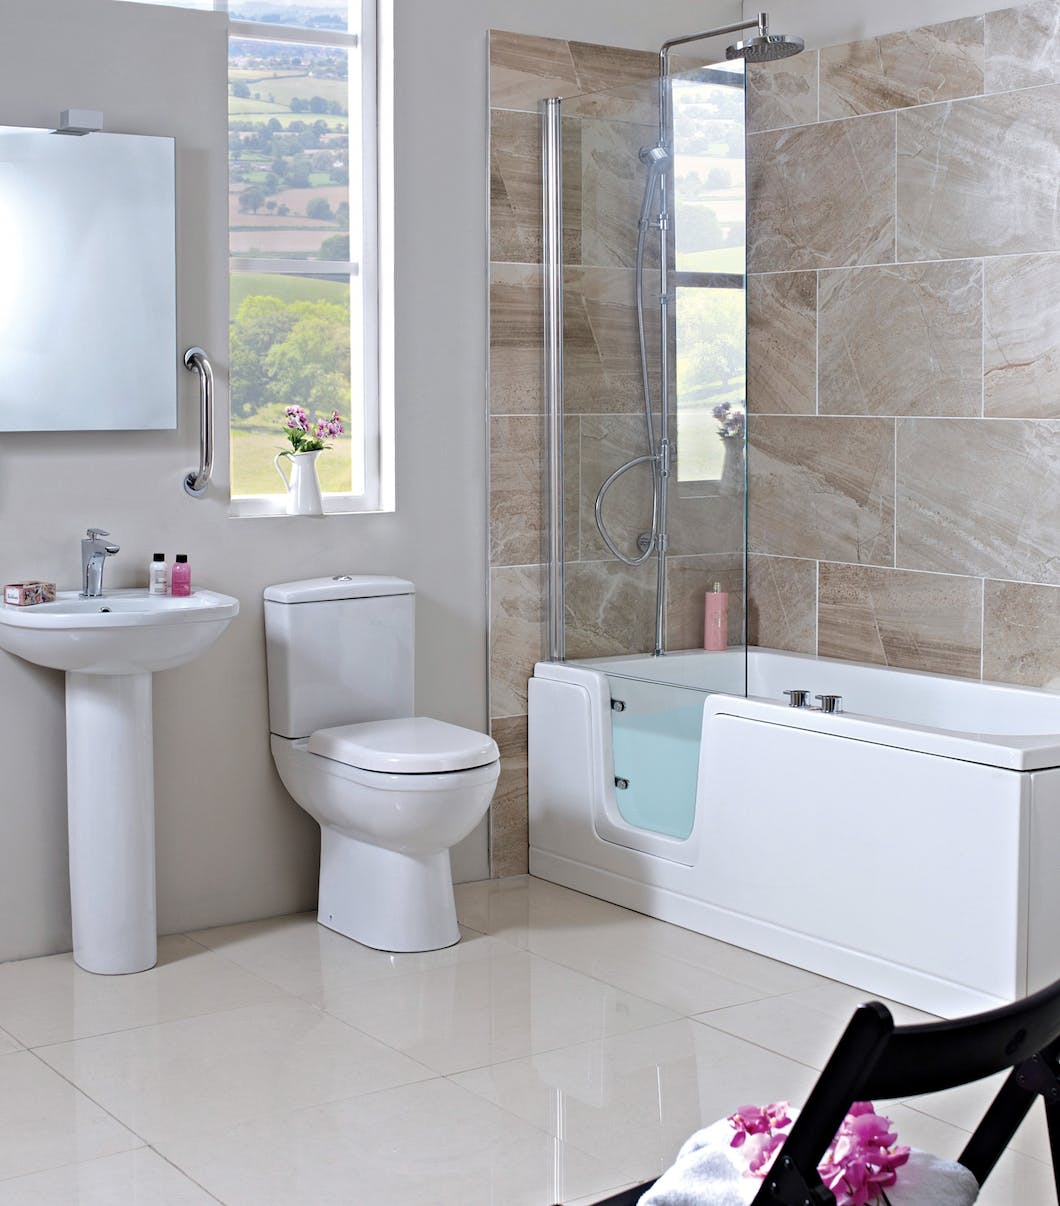 The bathroom is widely acknowledge to be the most troublesome and risk infused room within the modern day home.  Walk-in baths and easy access baths are one solution which may help overcome this troublesome area